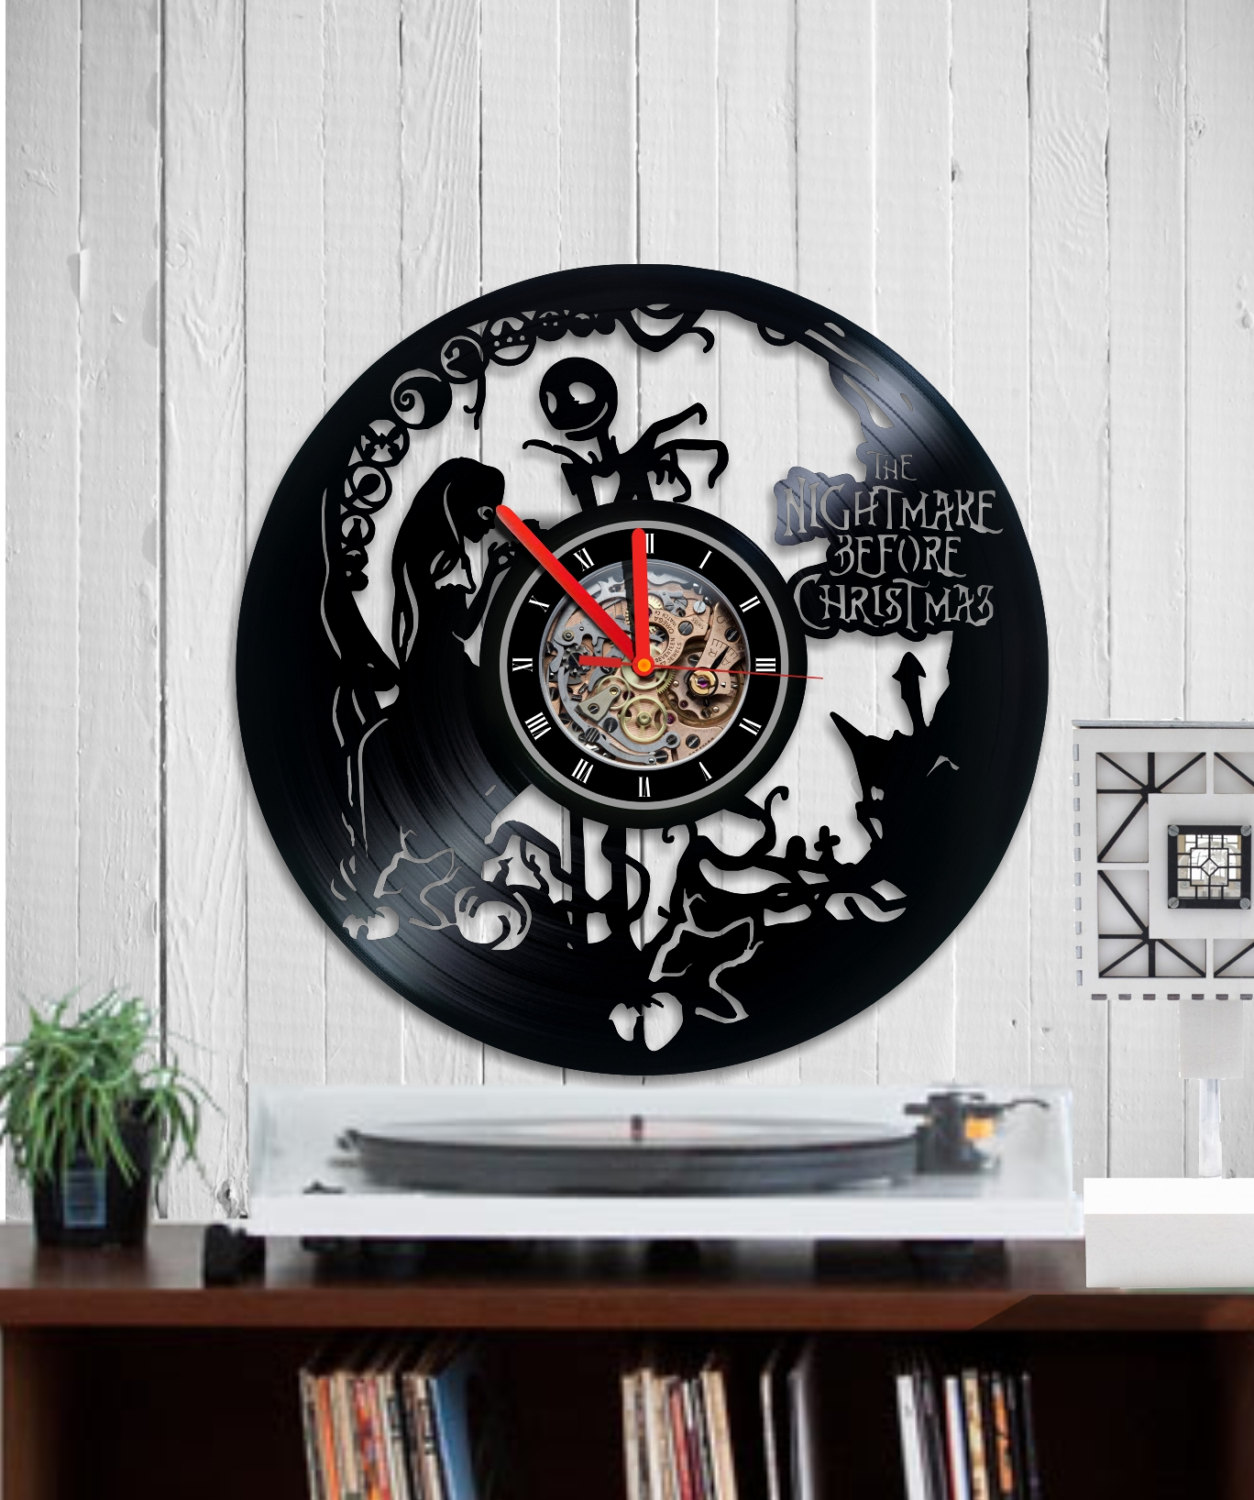 VINYL RECORD CLOCK WALL - NIGHTMARE BEFORE CHRISTMAS 3